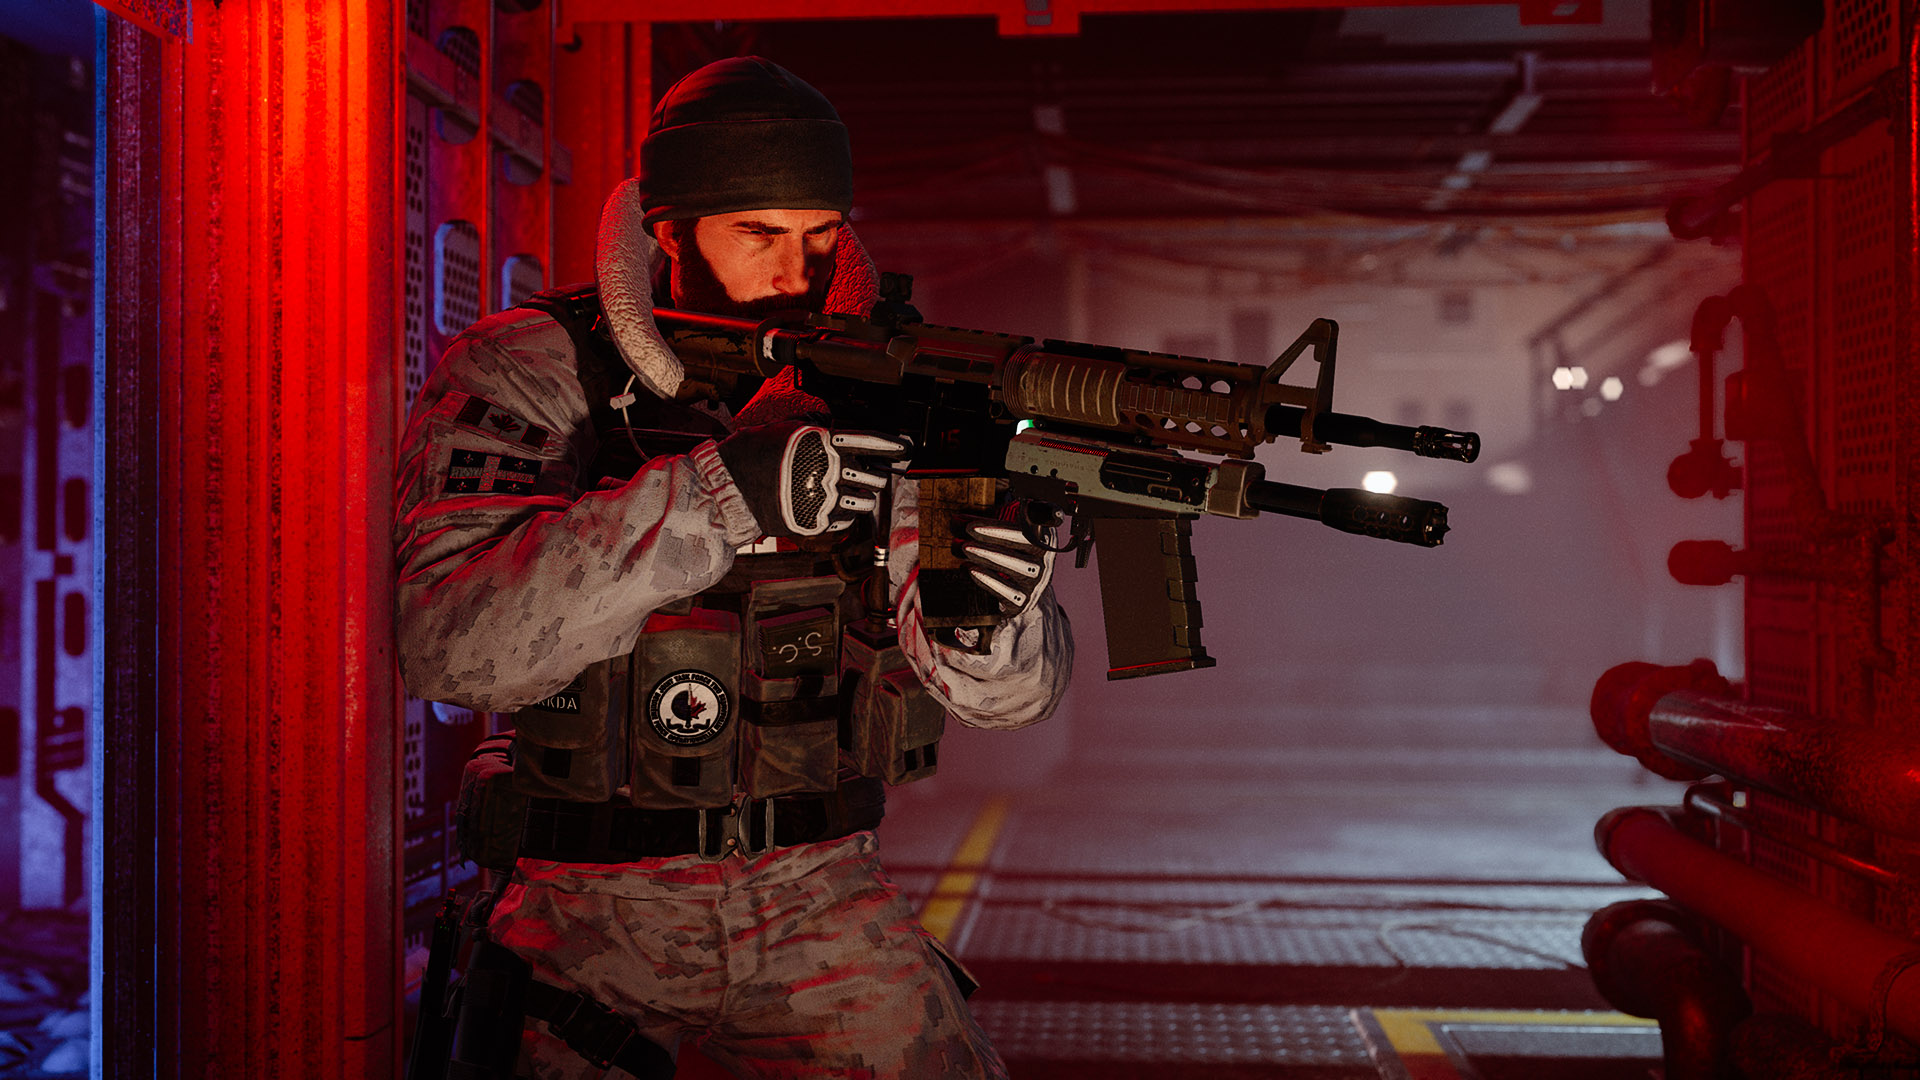 Rainbow 6 Siege: JTF2 Operator Guide - Frost and Buck | USgamer